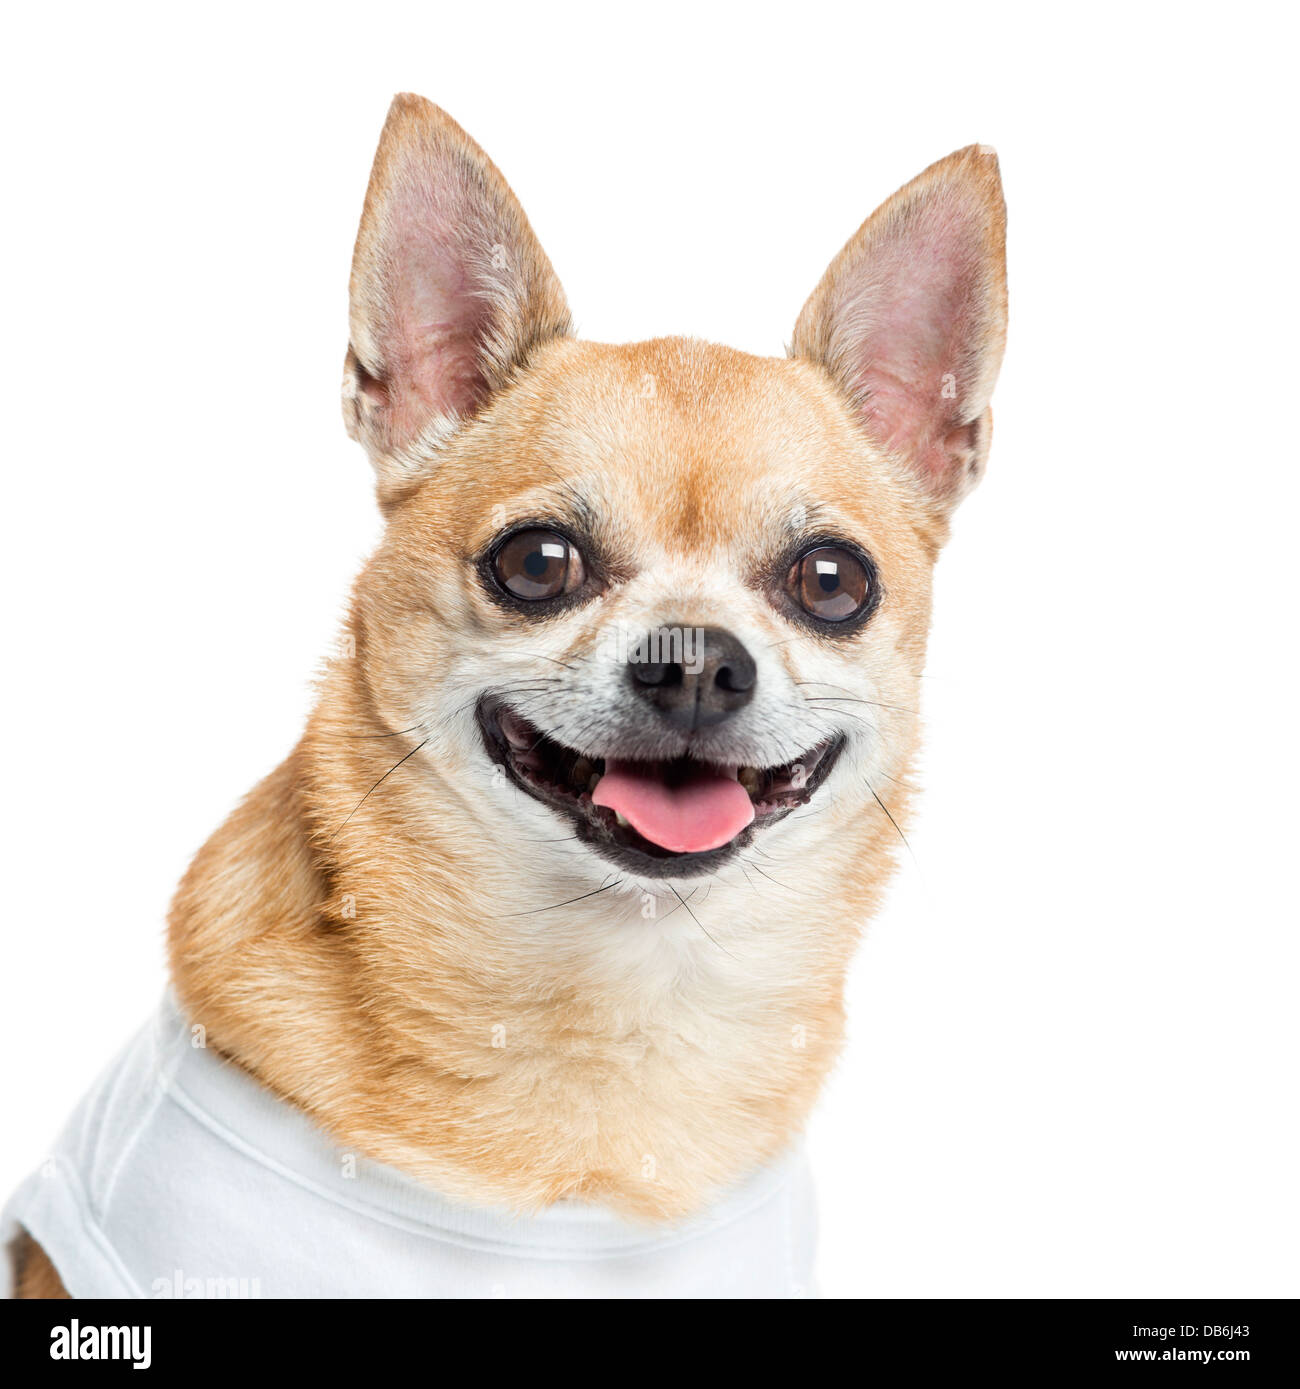 Close-up of dressed and smiling Chihuahua against white background - Stock Image